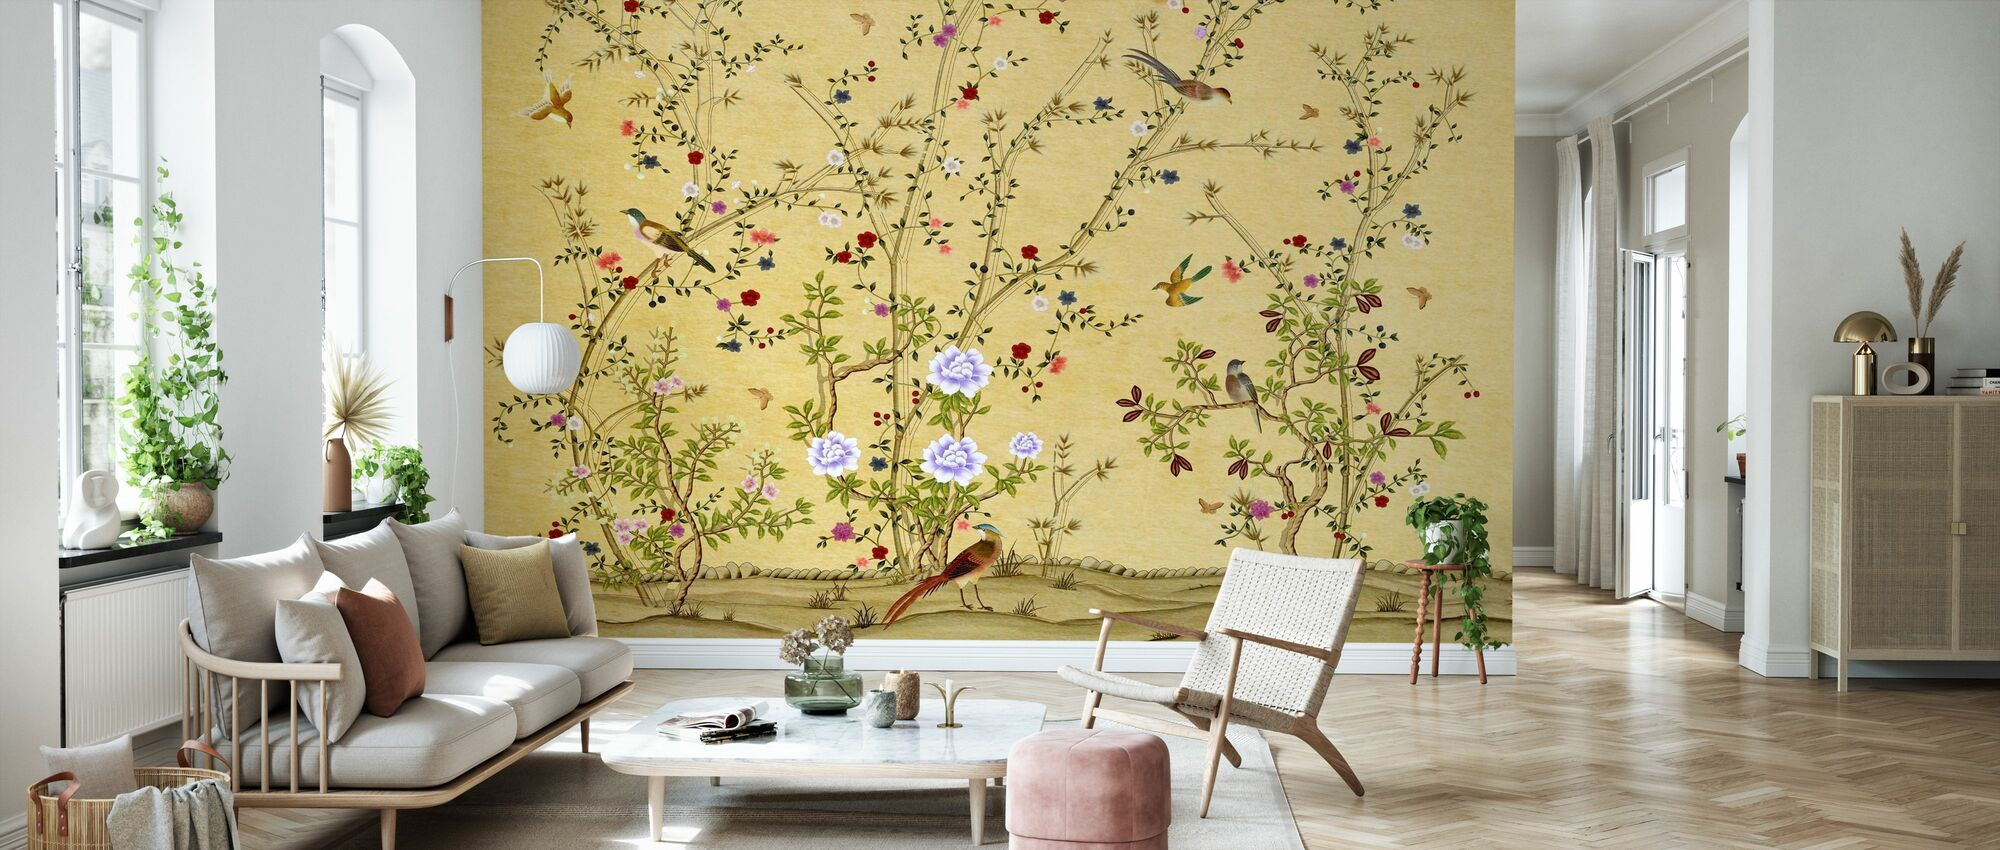 Birds on Branches - Wallpaper - Living Room